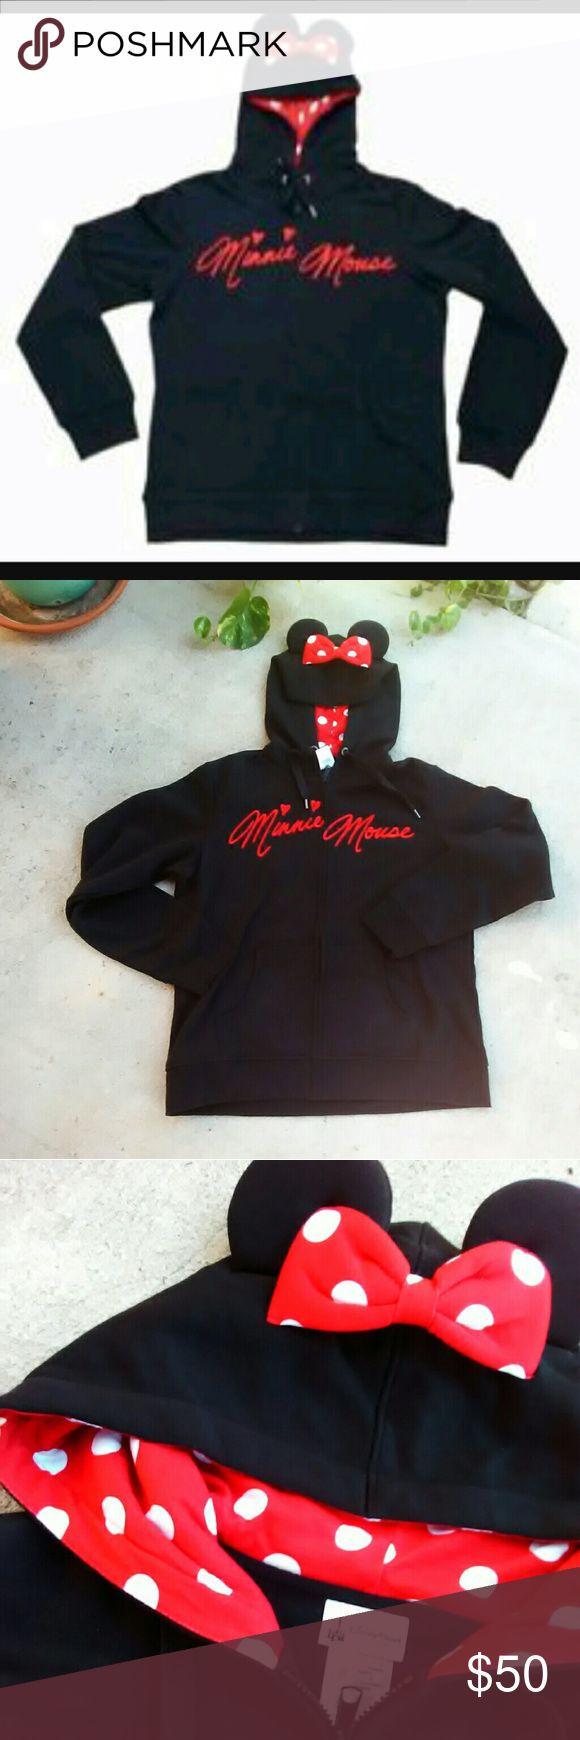 NWT MINNIE MOUSE EAR  BLACK ZIP UP HOODIE -BRAND NEW WITH TAG -MINNIE MOUSE SIGNATURE EAR HOODIE  -HEAVY DUTY ZIPPER AND HOOD TIES WITH/ BLACK METAL ACCENTS  -MINNIE MOUSE'S SIGNATURE ON FRONT  -HOOD W/EARS & POLKA DOT BOW AND LINED IN RED W/WHITE POLKADOTS  -GET EXCLUSIVELY ONLINE DISNEY OFFICIAL WEBSITE FOR: 64.99 + 5.25 + 9.95 OR AT A DISNEY PARK FOR : 75.99 + TAX !!!!  -IF U WANT A FITTED HOODIE IT FITS TRUE TO SIZE BUT I LIKE MY HOODIES A LITTLE BIG SO IM A SIZE M AND WEAR THIS…